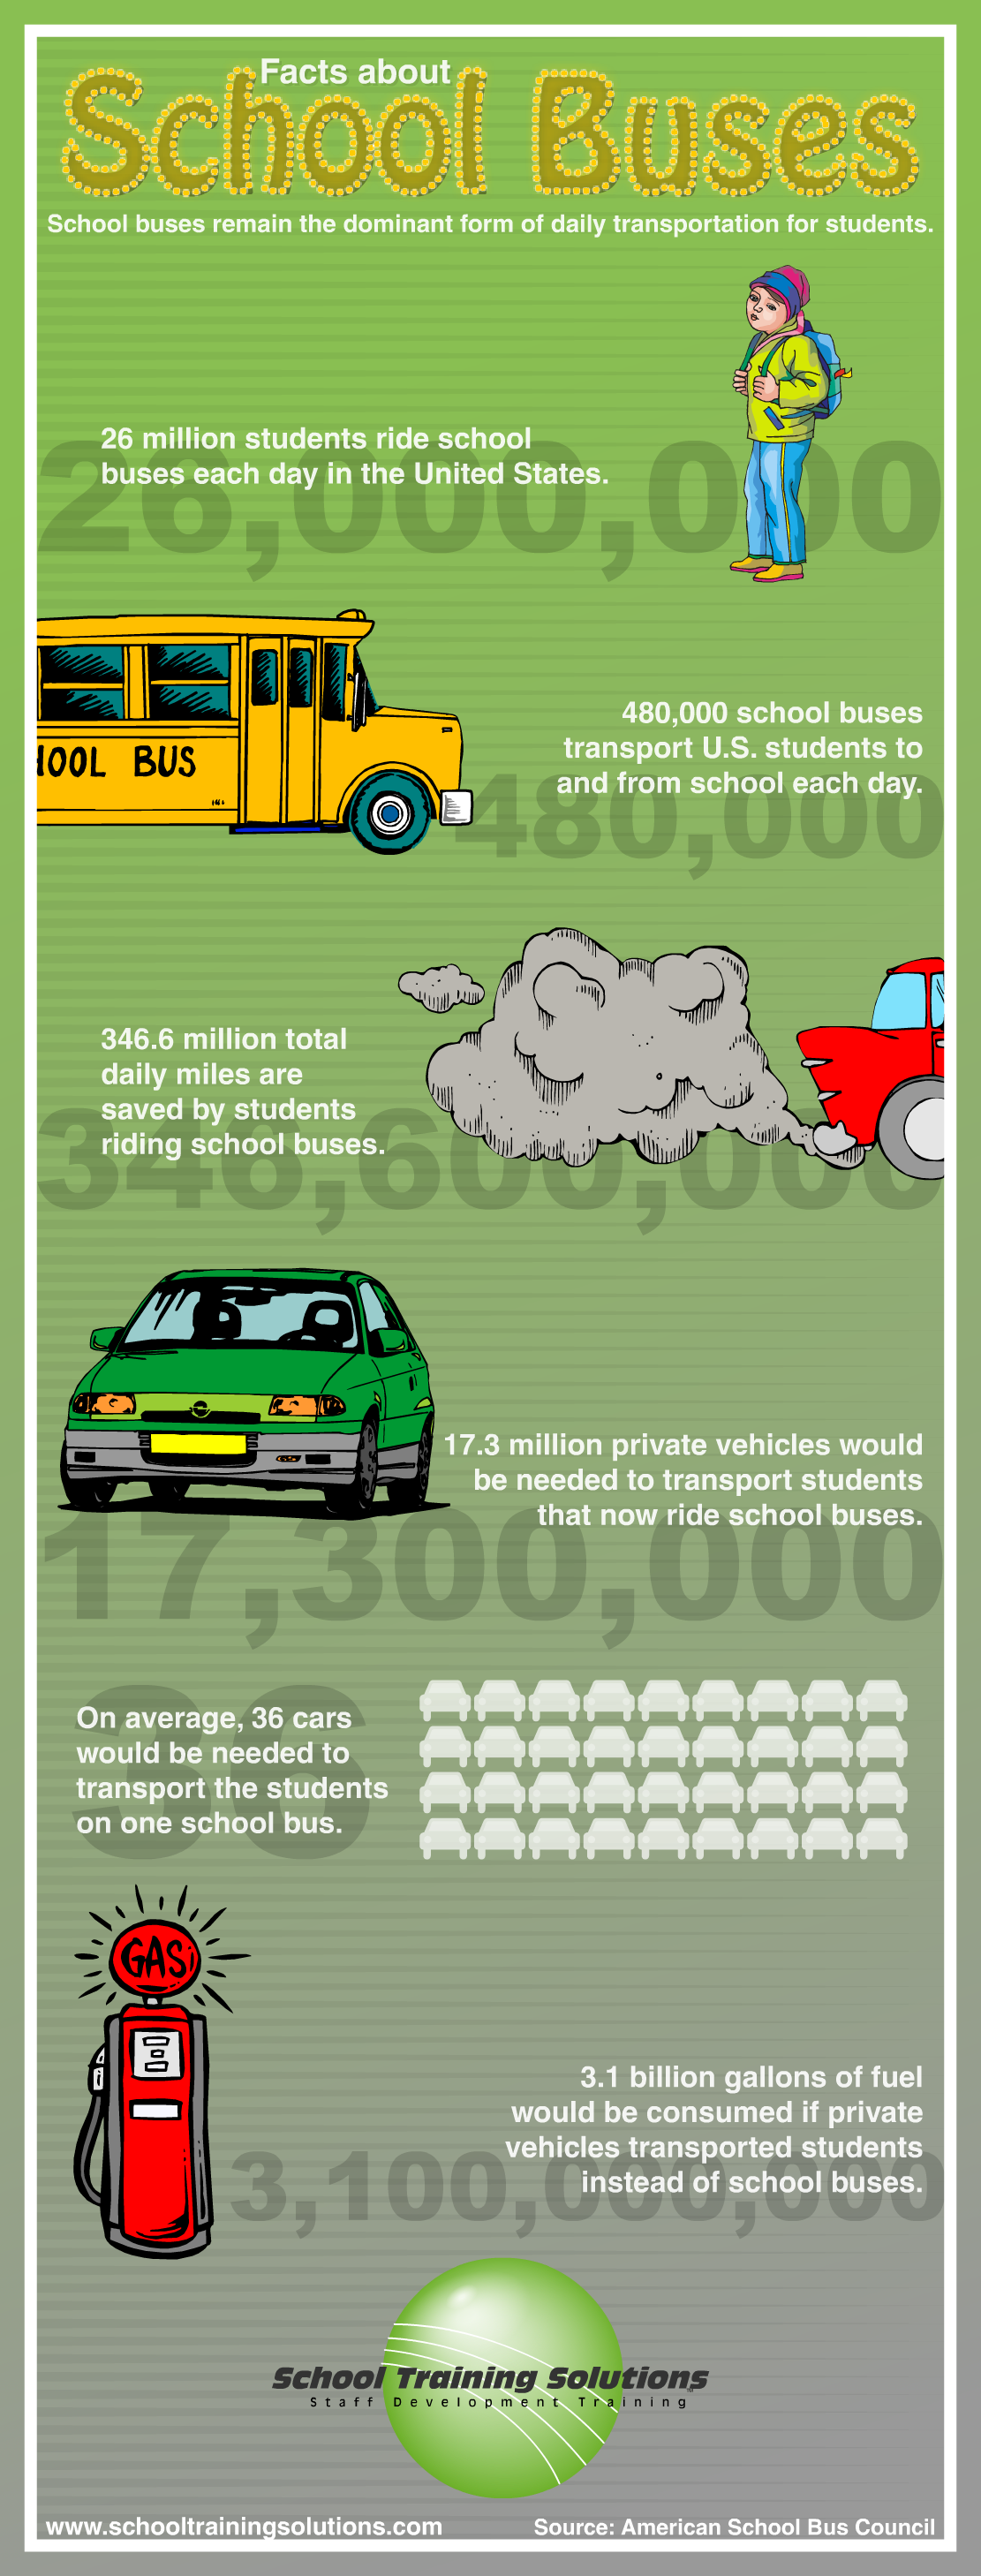 What You Need to Know About School Buses